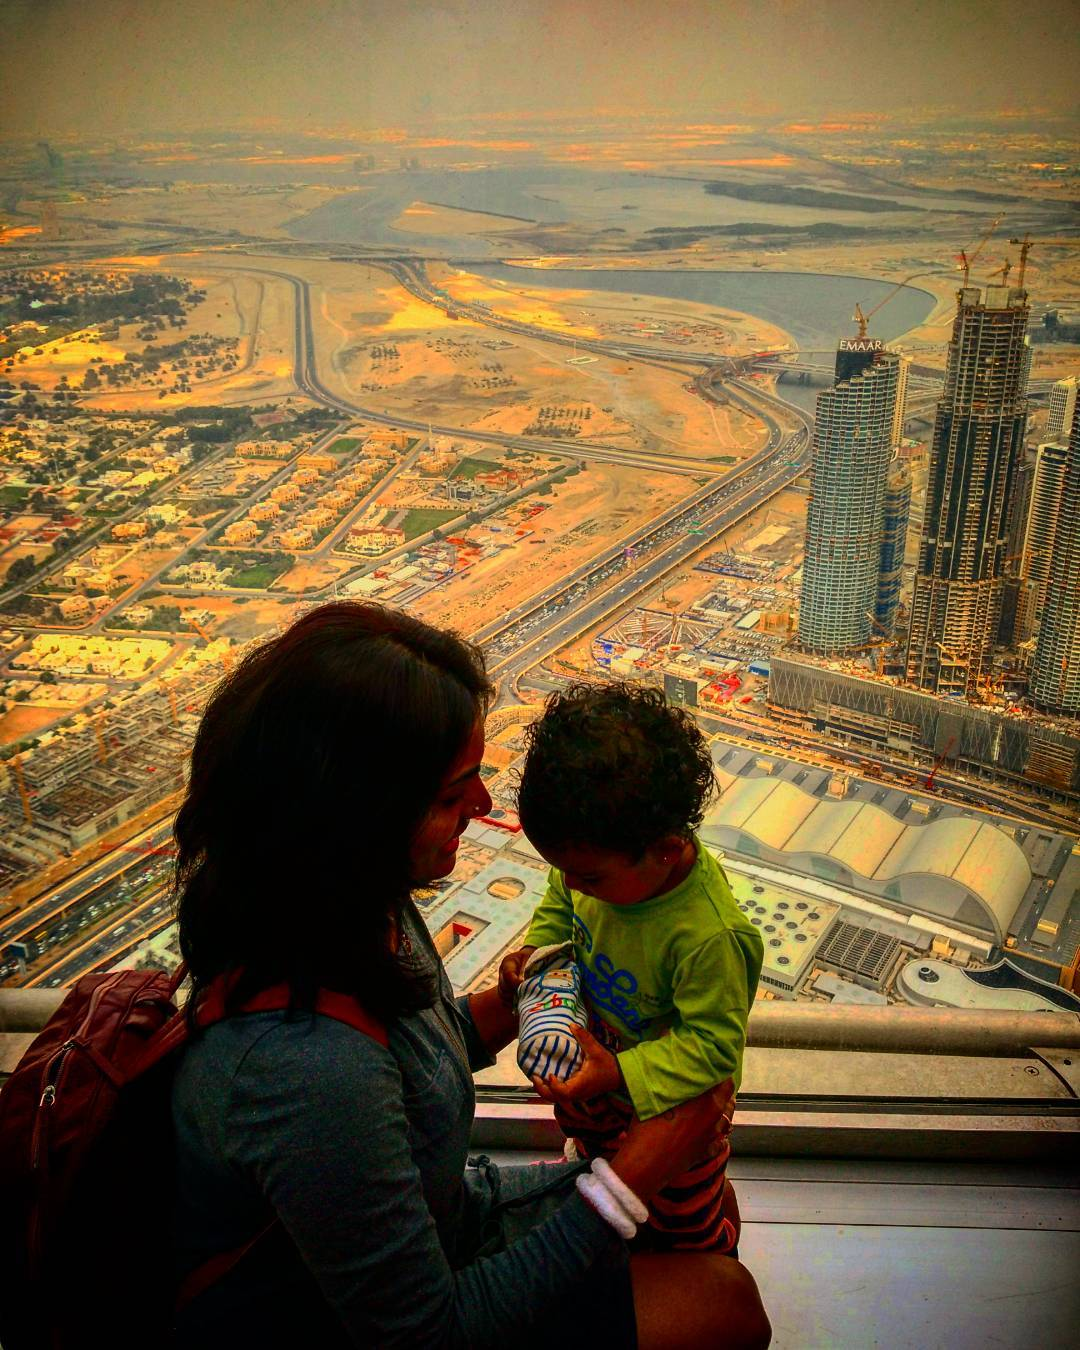 My World View! #AtTheTop #burjkhalifa #Dubai #family #124floor